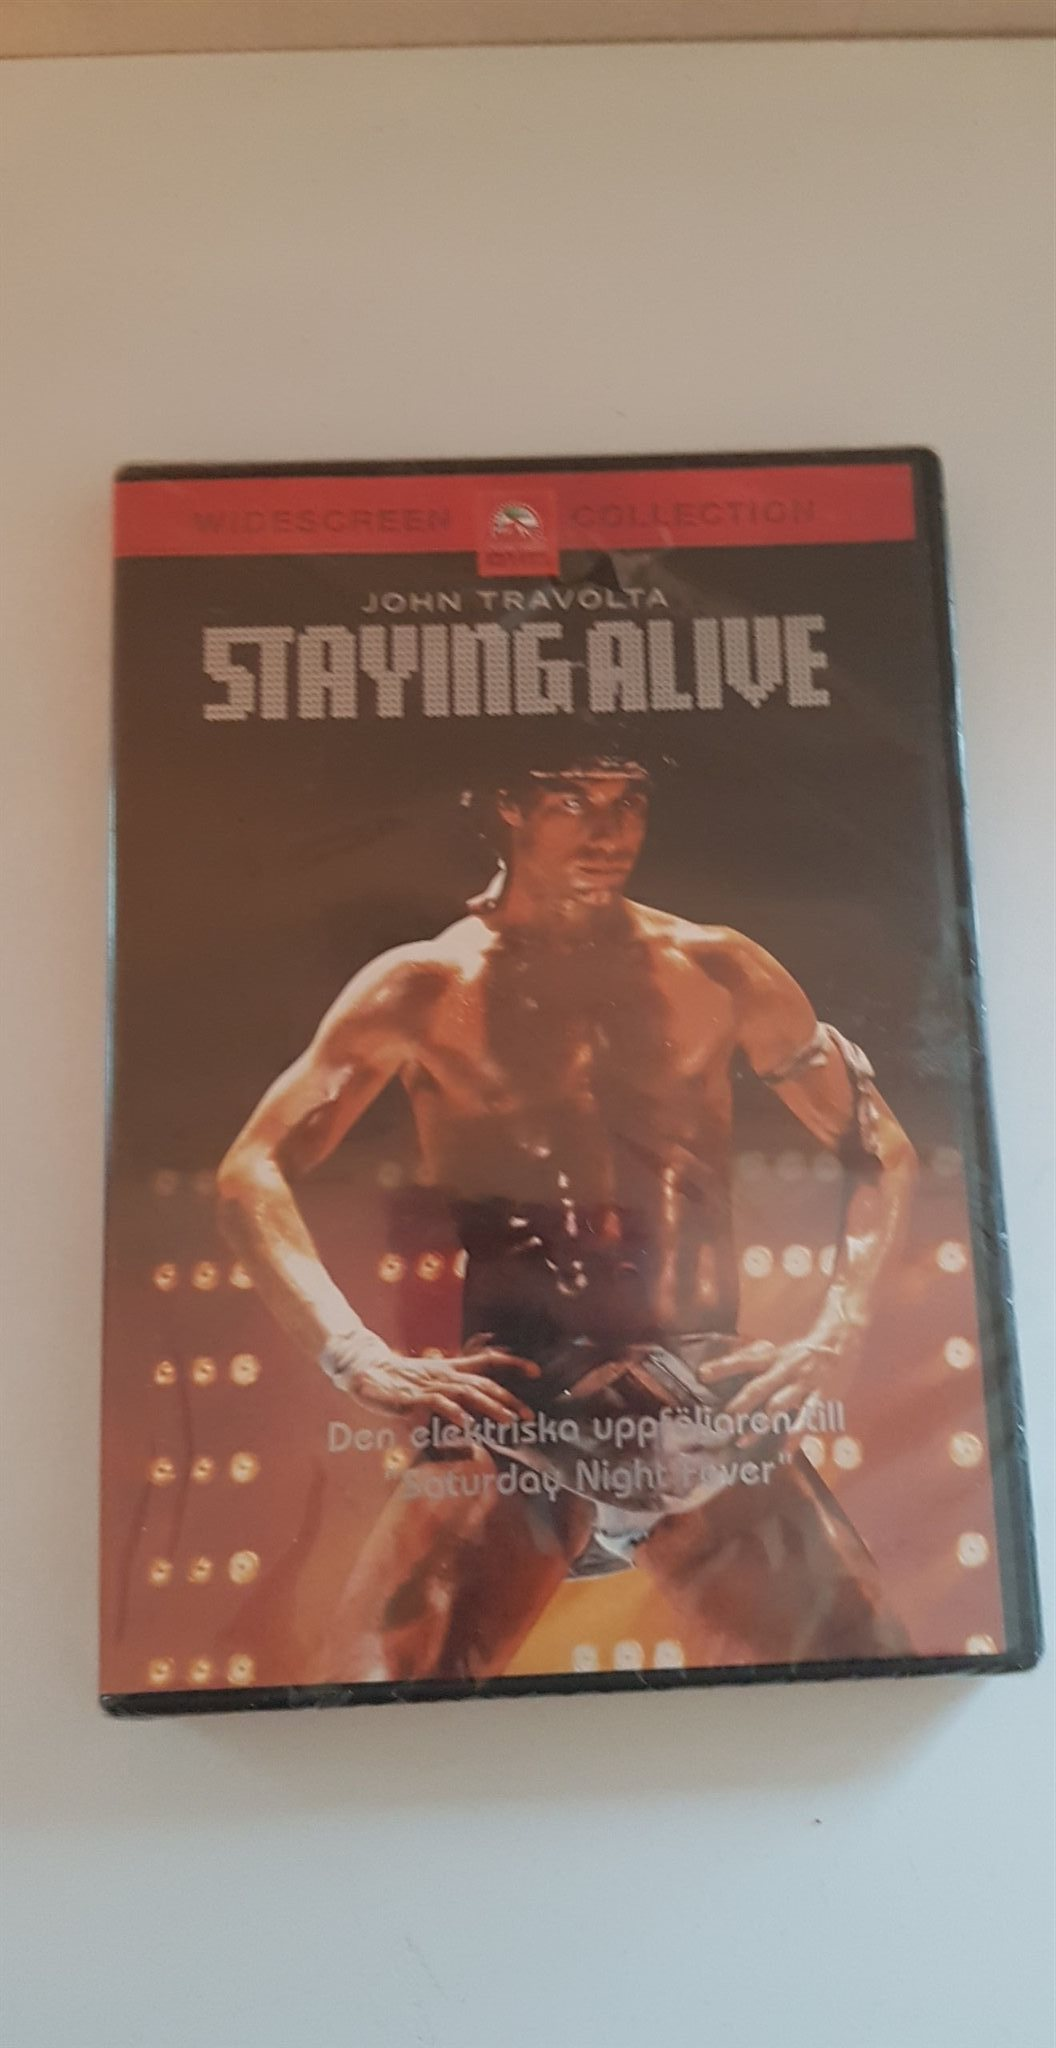 John Travolta, Staying alive